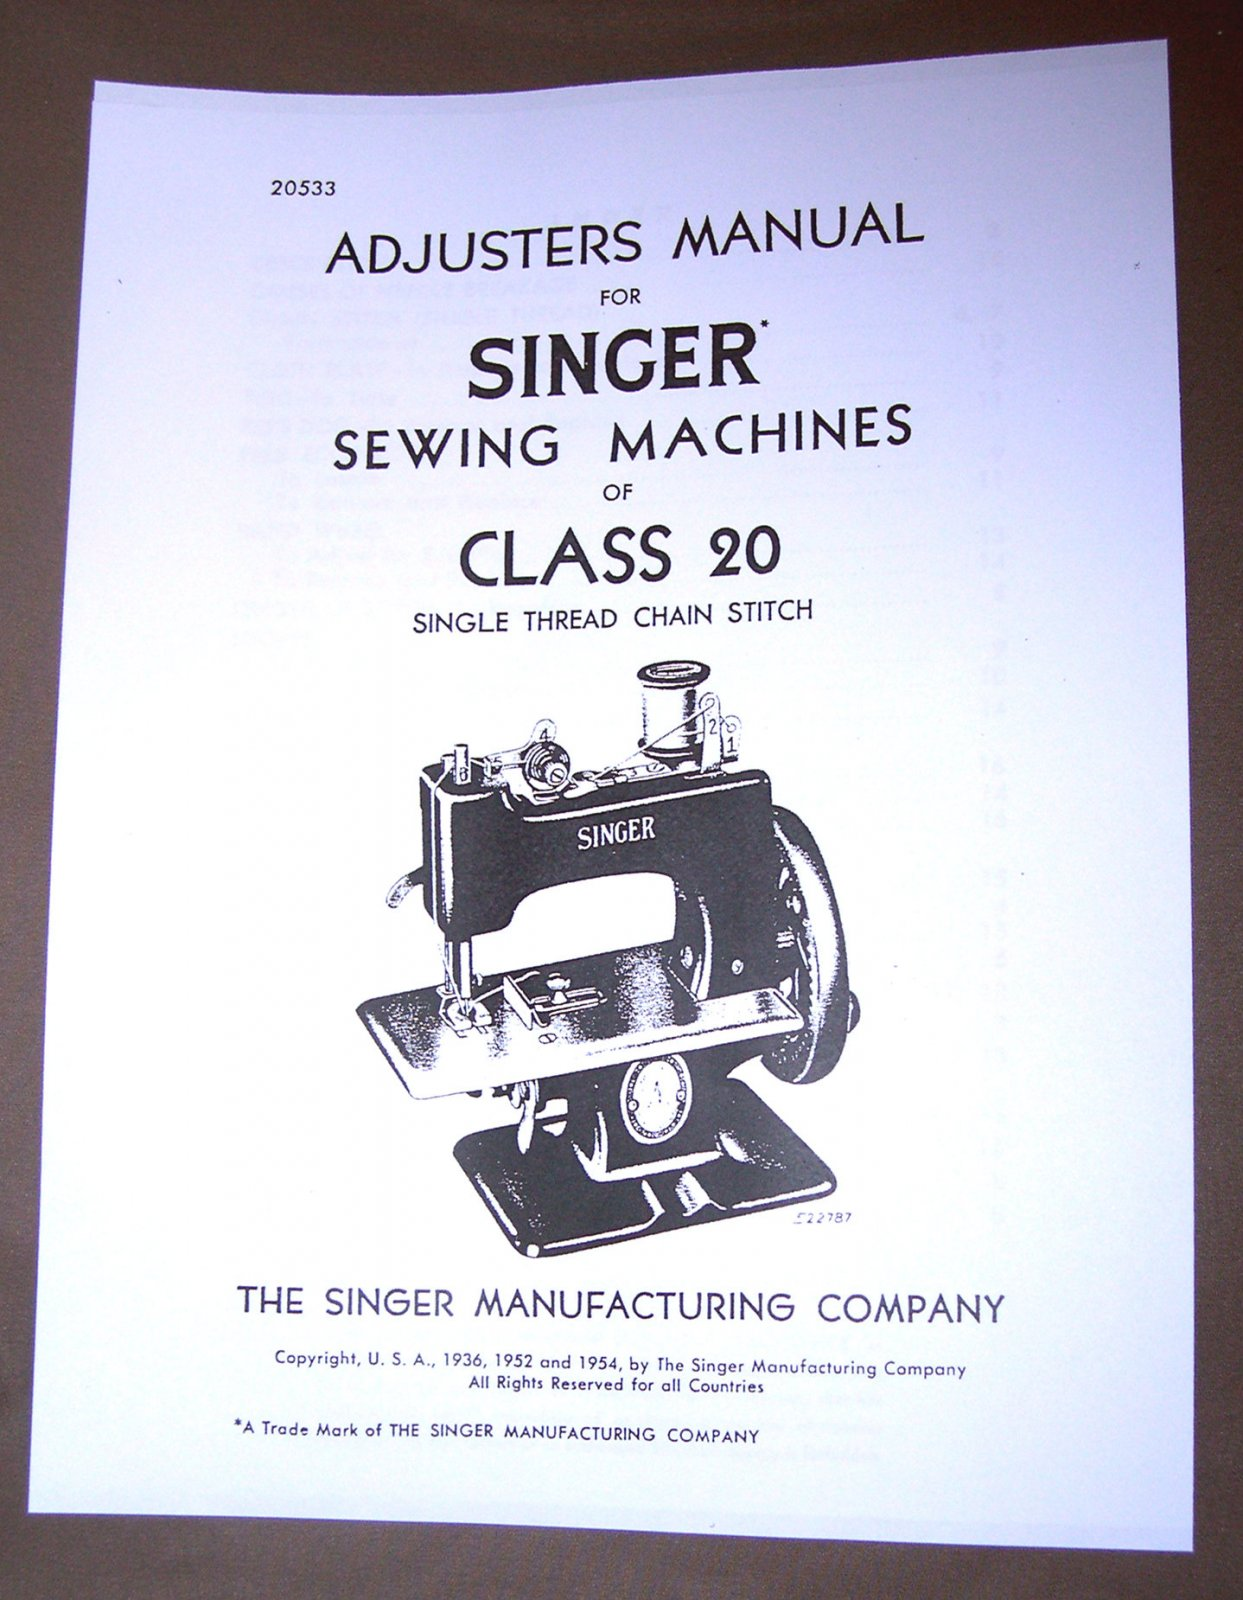 Adjusters Manual for Singer Sewing Machines Class 20